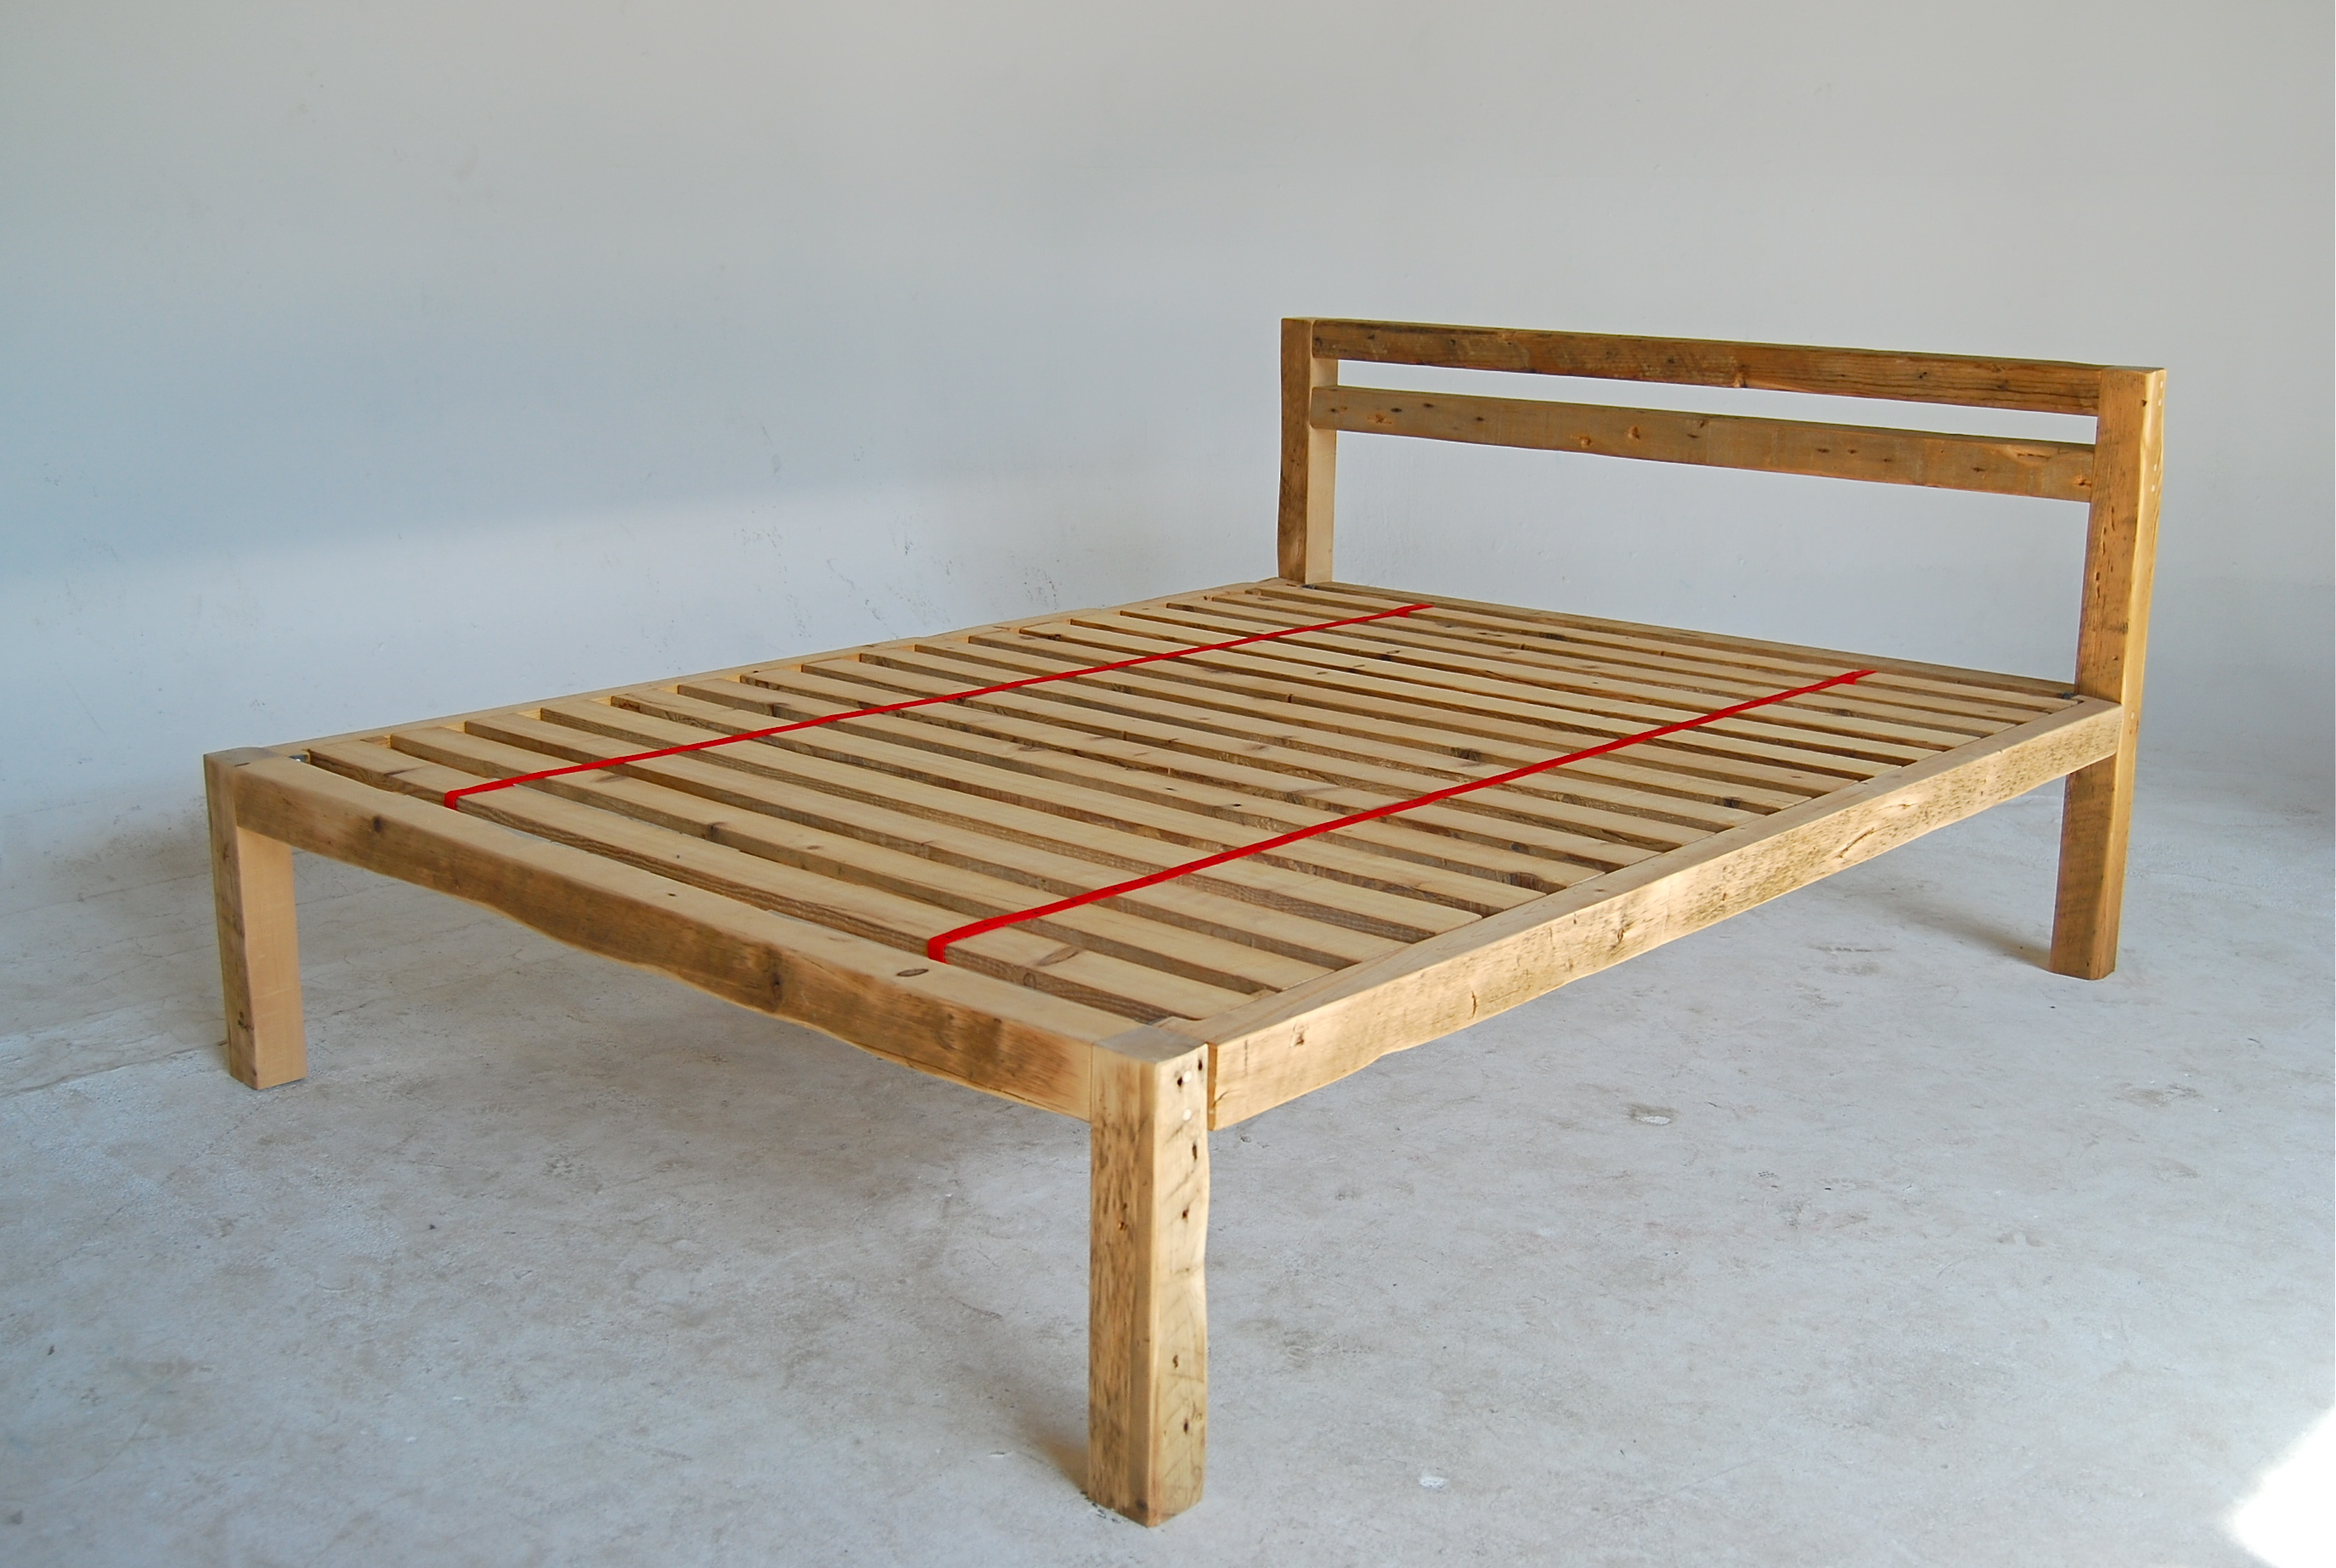 DIY Bed Frame Plans